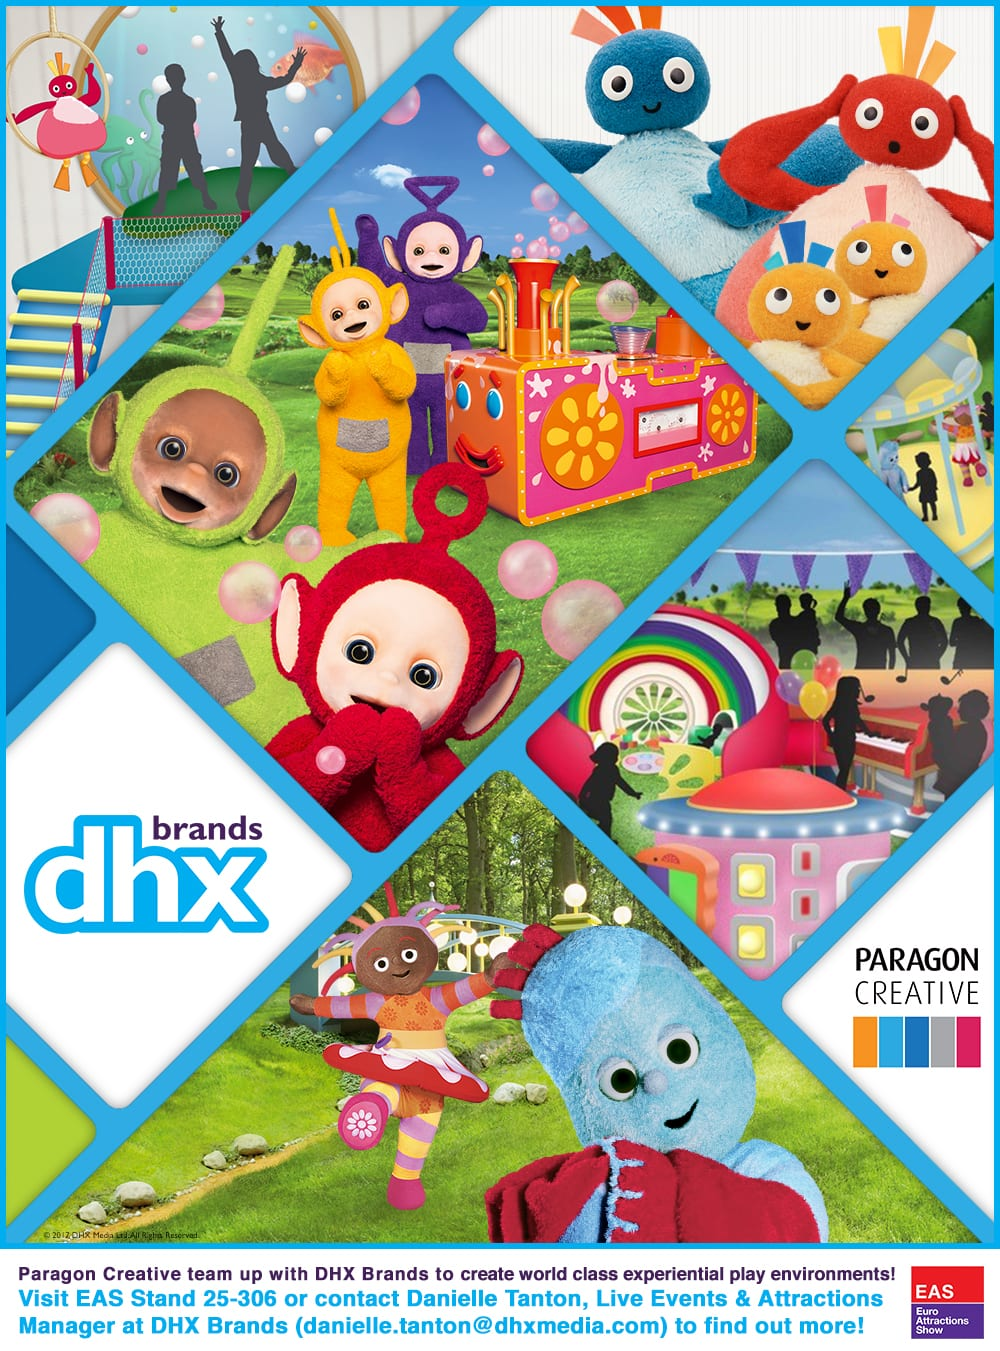 DHX Brands at EAS 2017